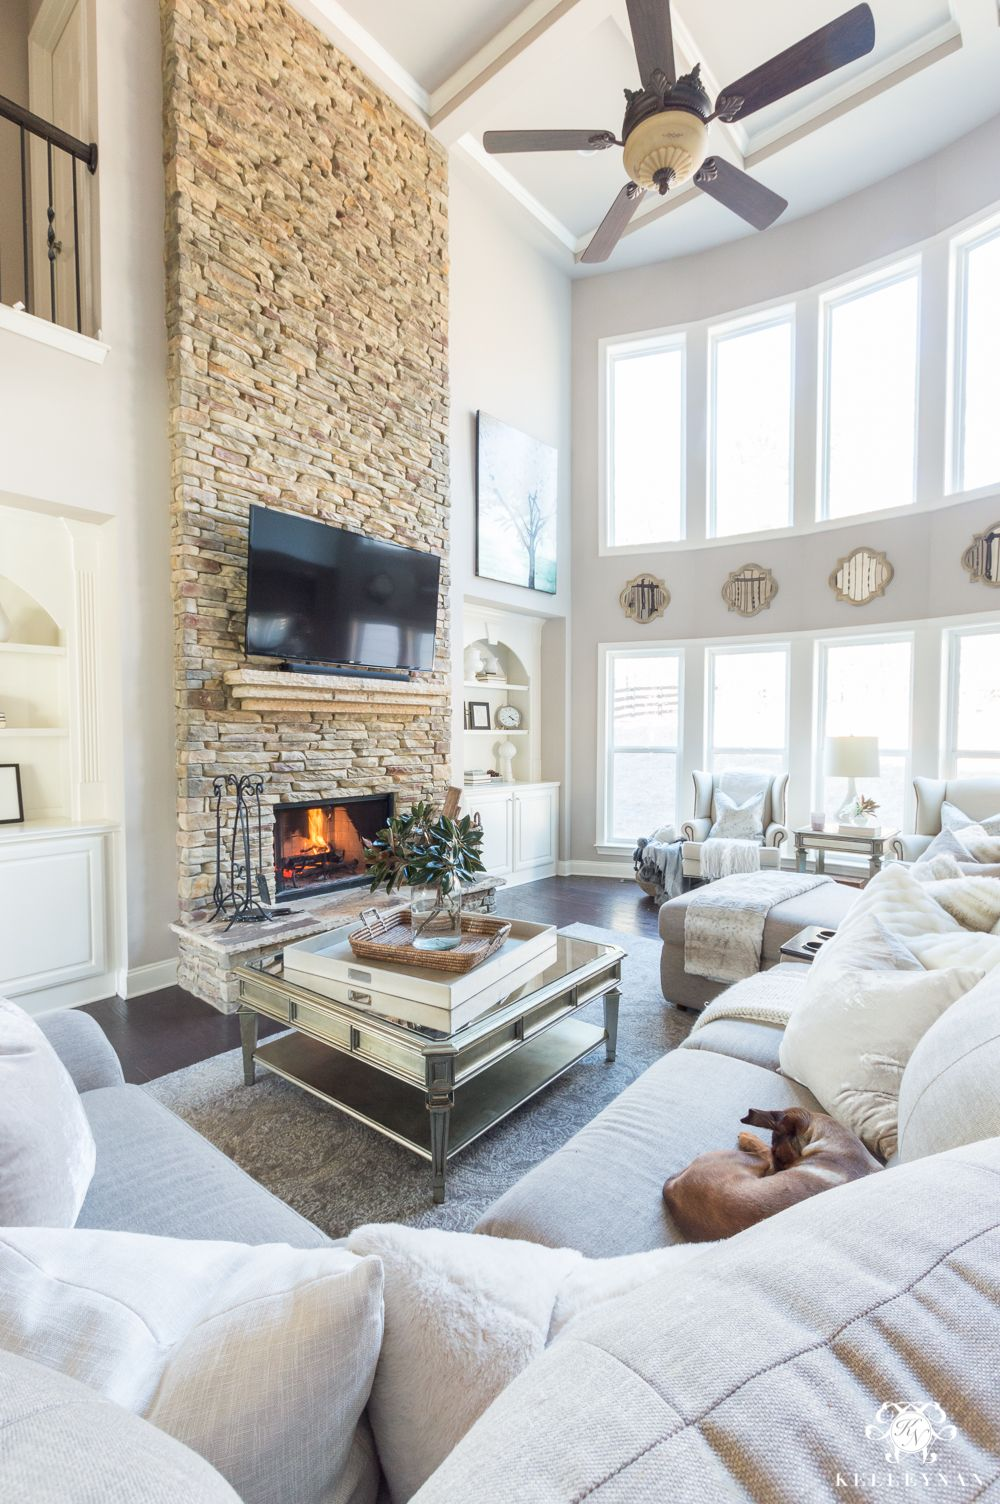 Great room: floor to ceiling stone fireplace, large windows to ...